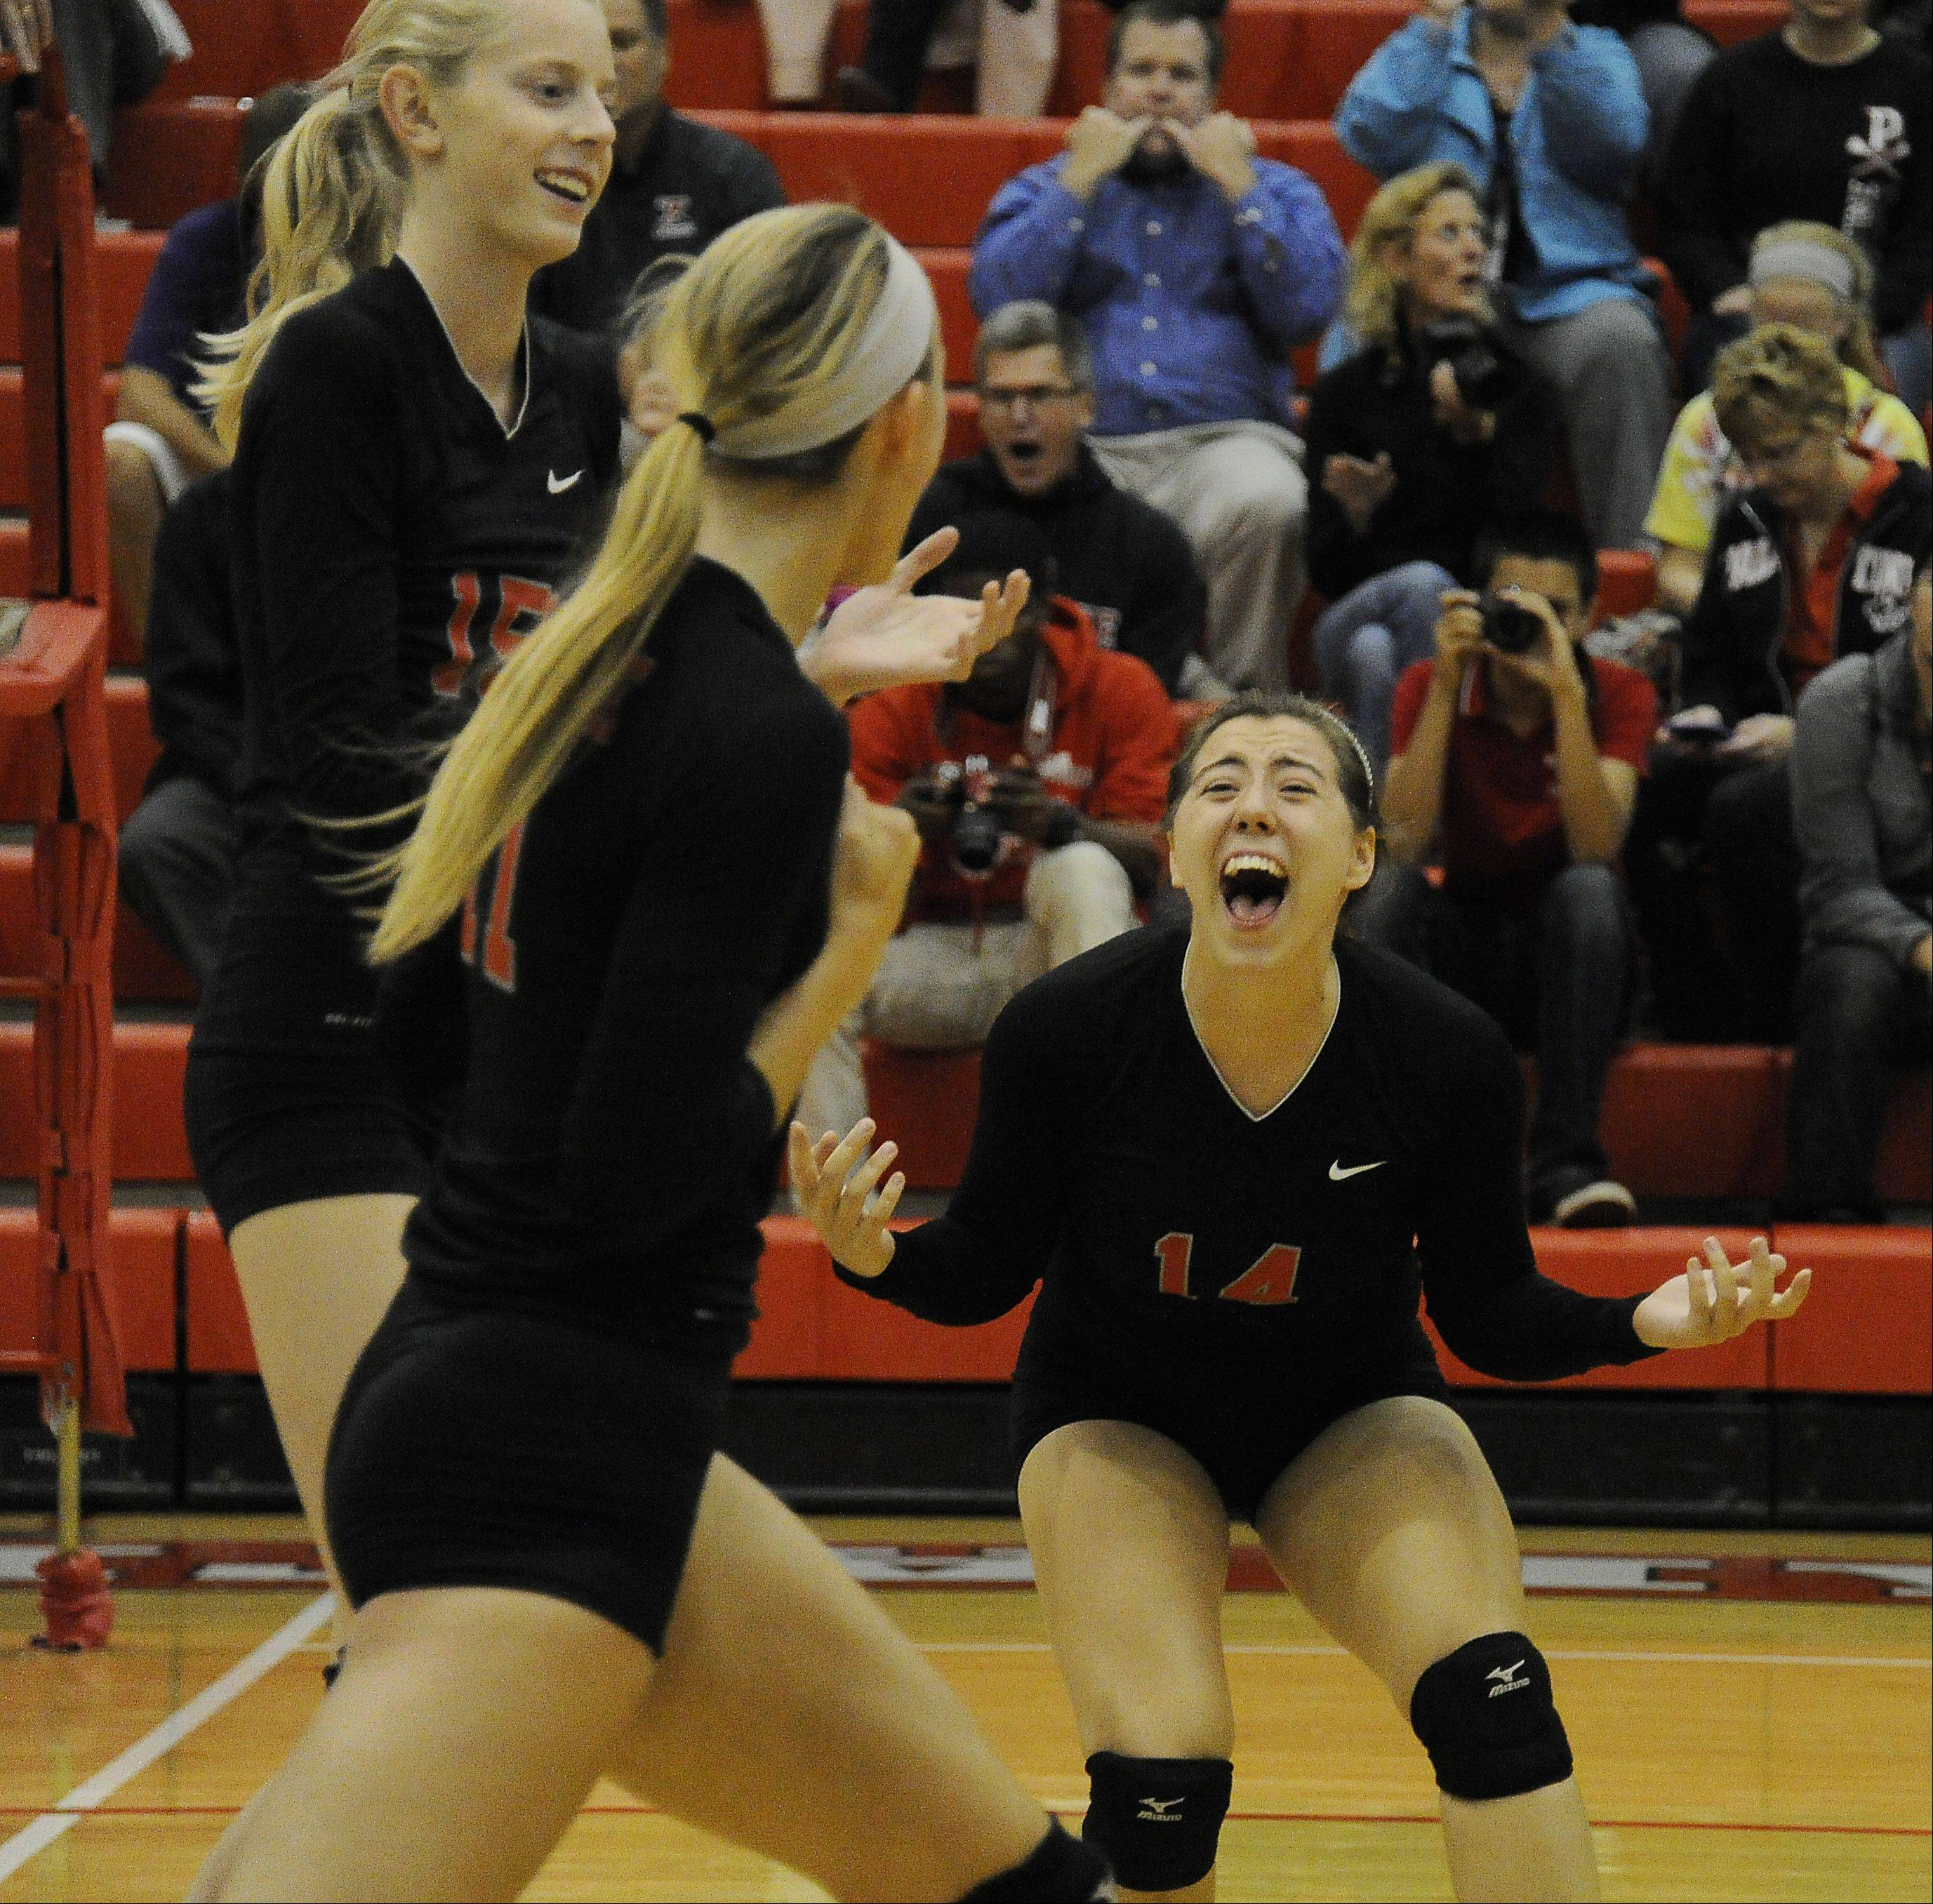 Palatine's Sarah Schiffer celebrates a point near the end of game against Fremd Thursday in Palatine.